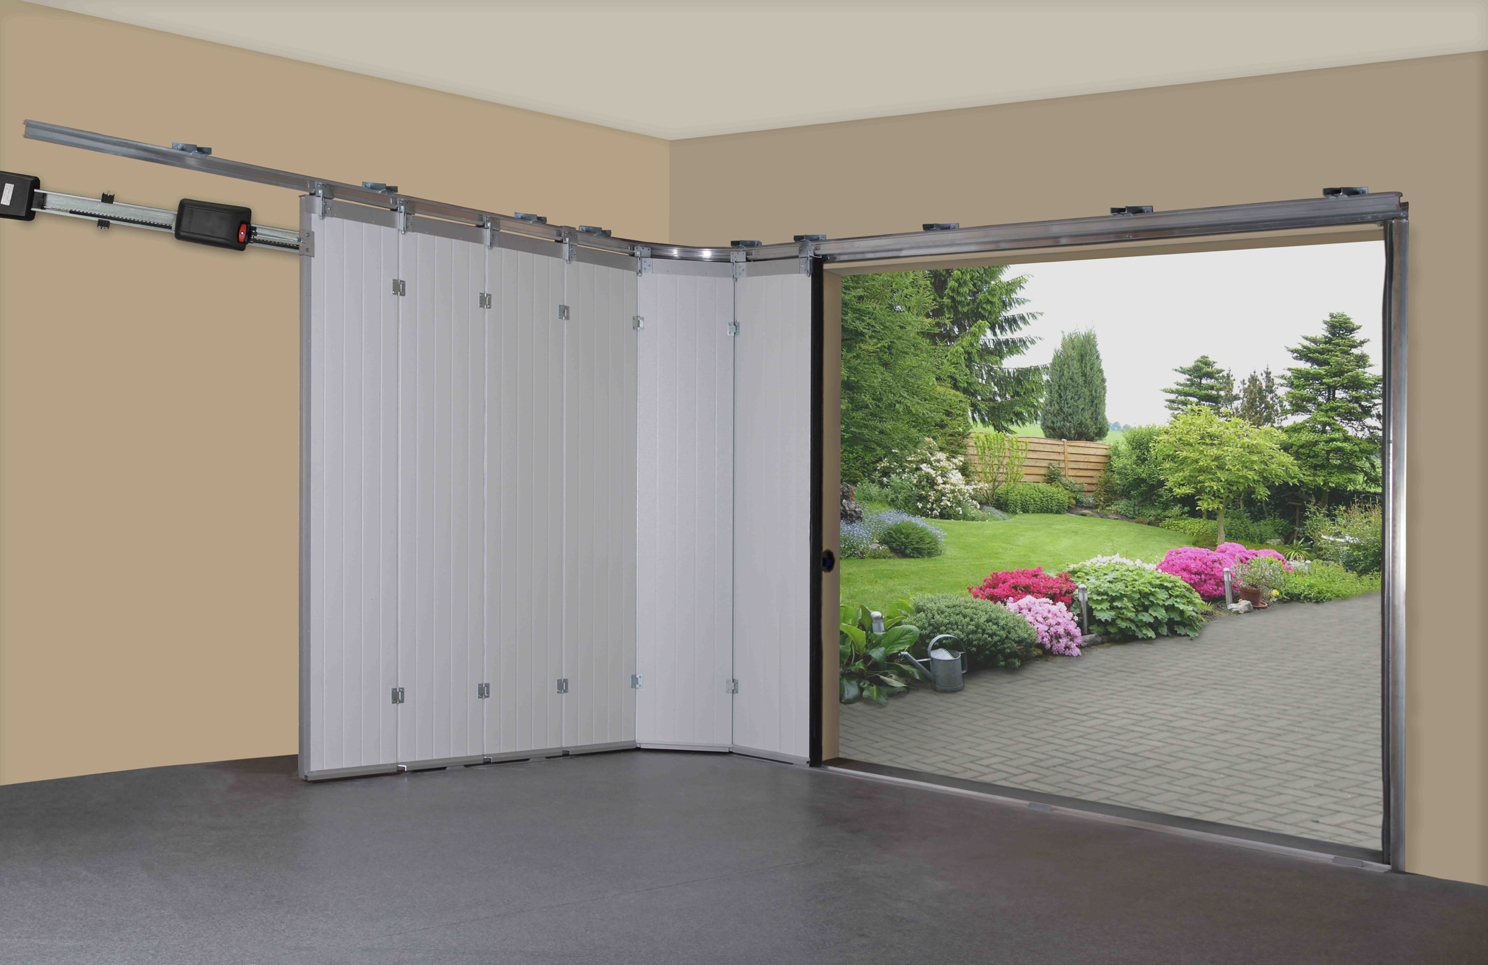 Horizontal Sliding Garage Doorsgarage doors sliding